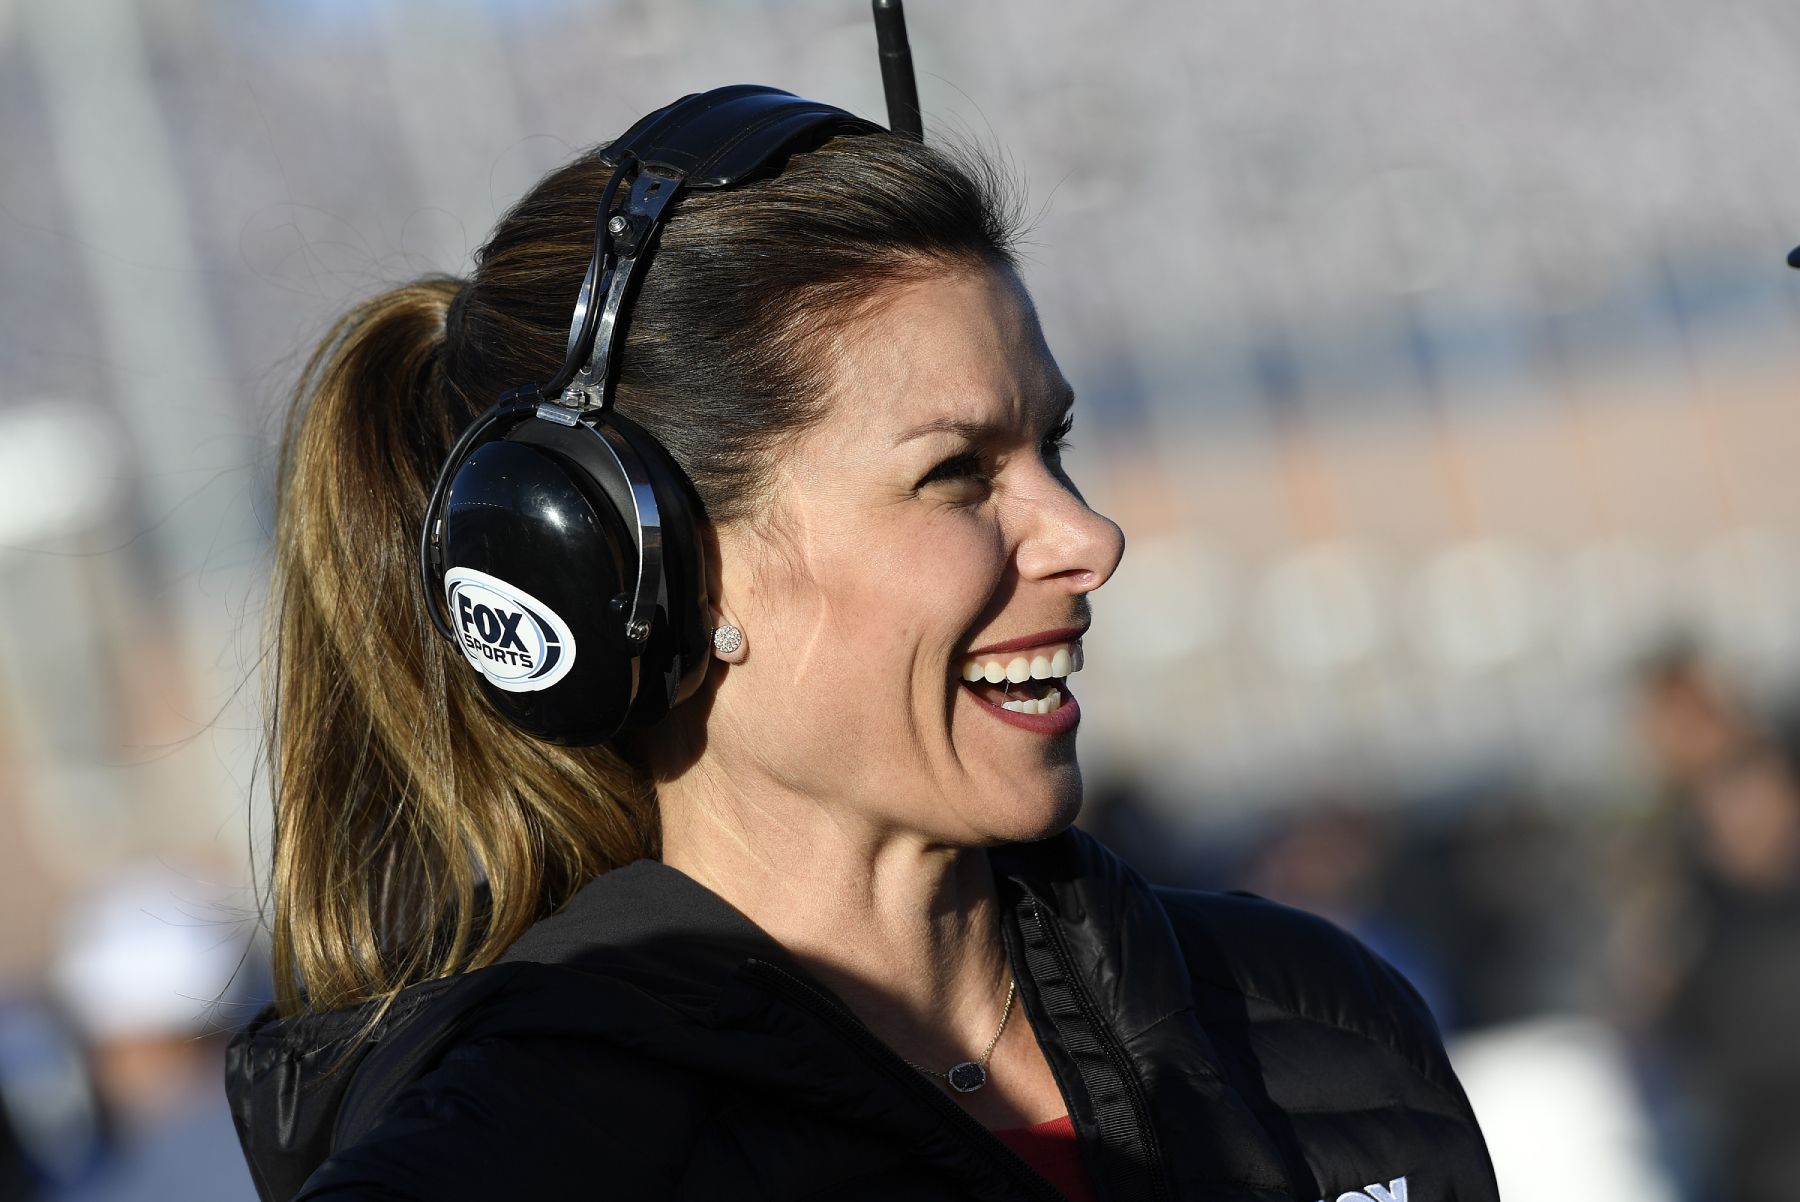 NASCAR reporter Jamie Little has had a successful career with ESPN and FOX Sports. So, why did she choose to leave ESPN?